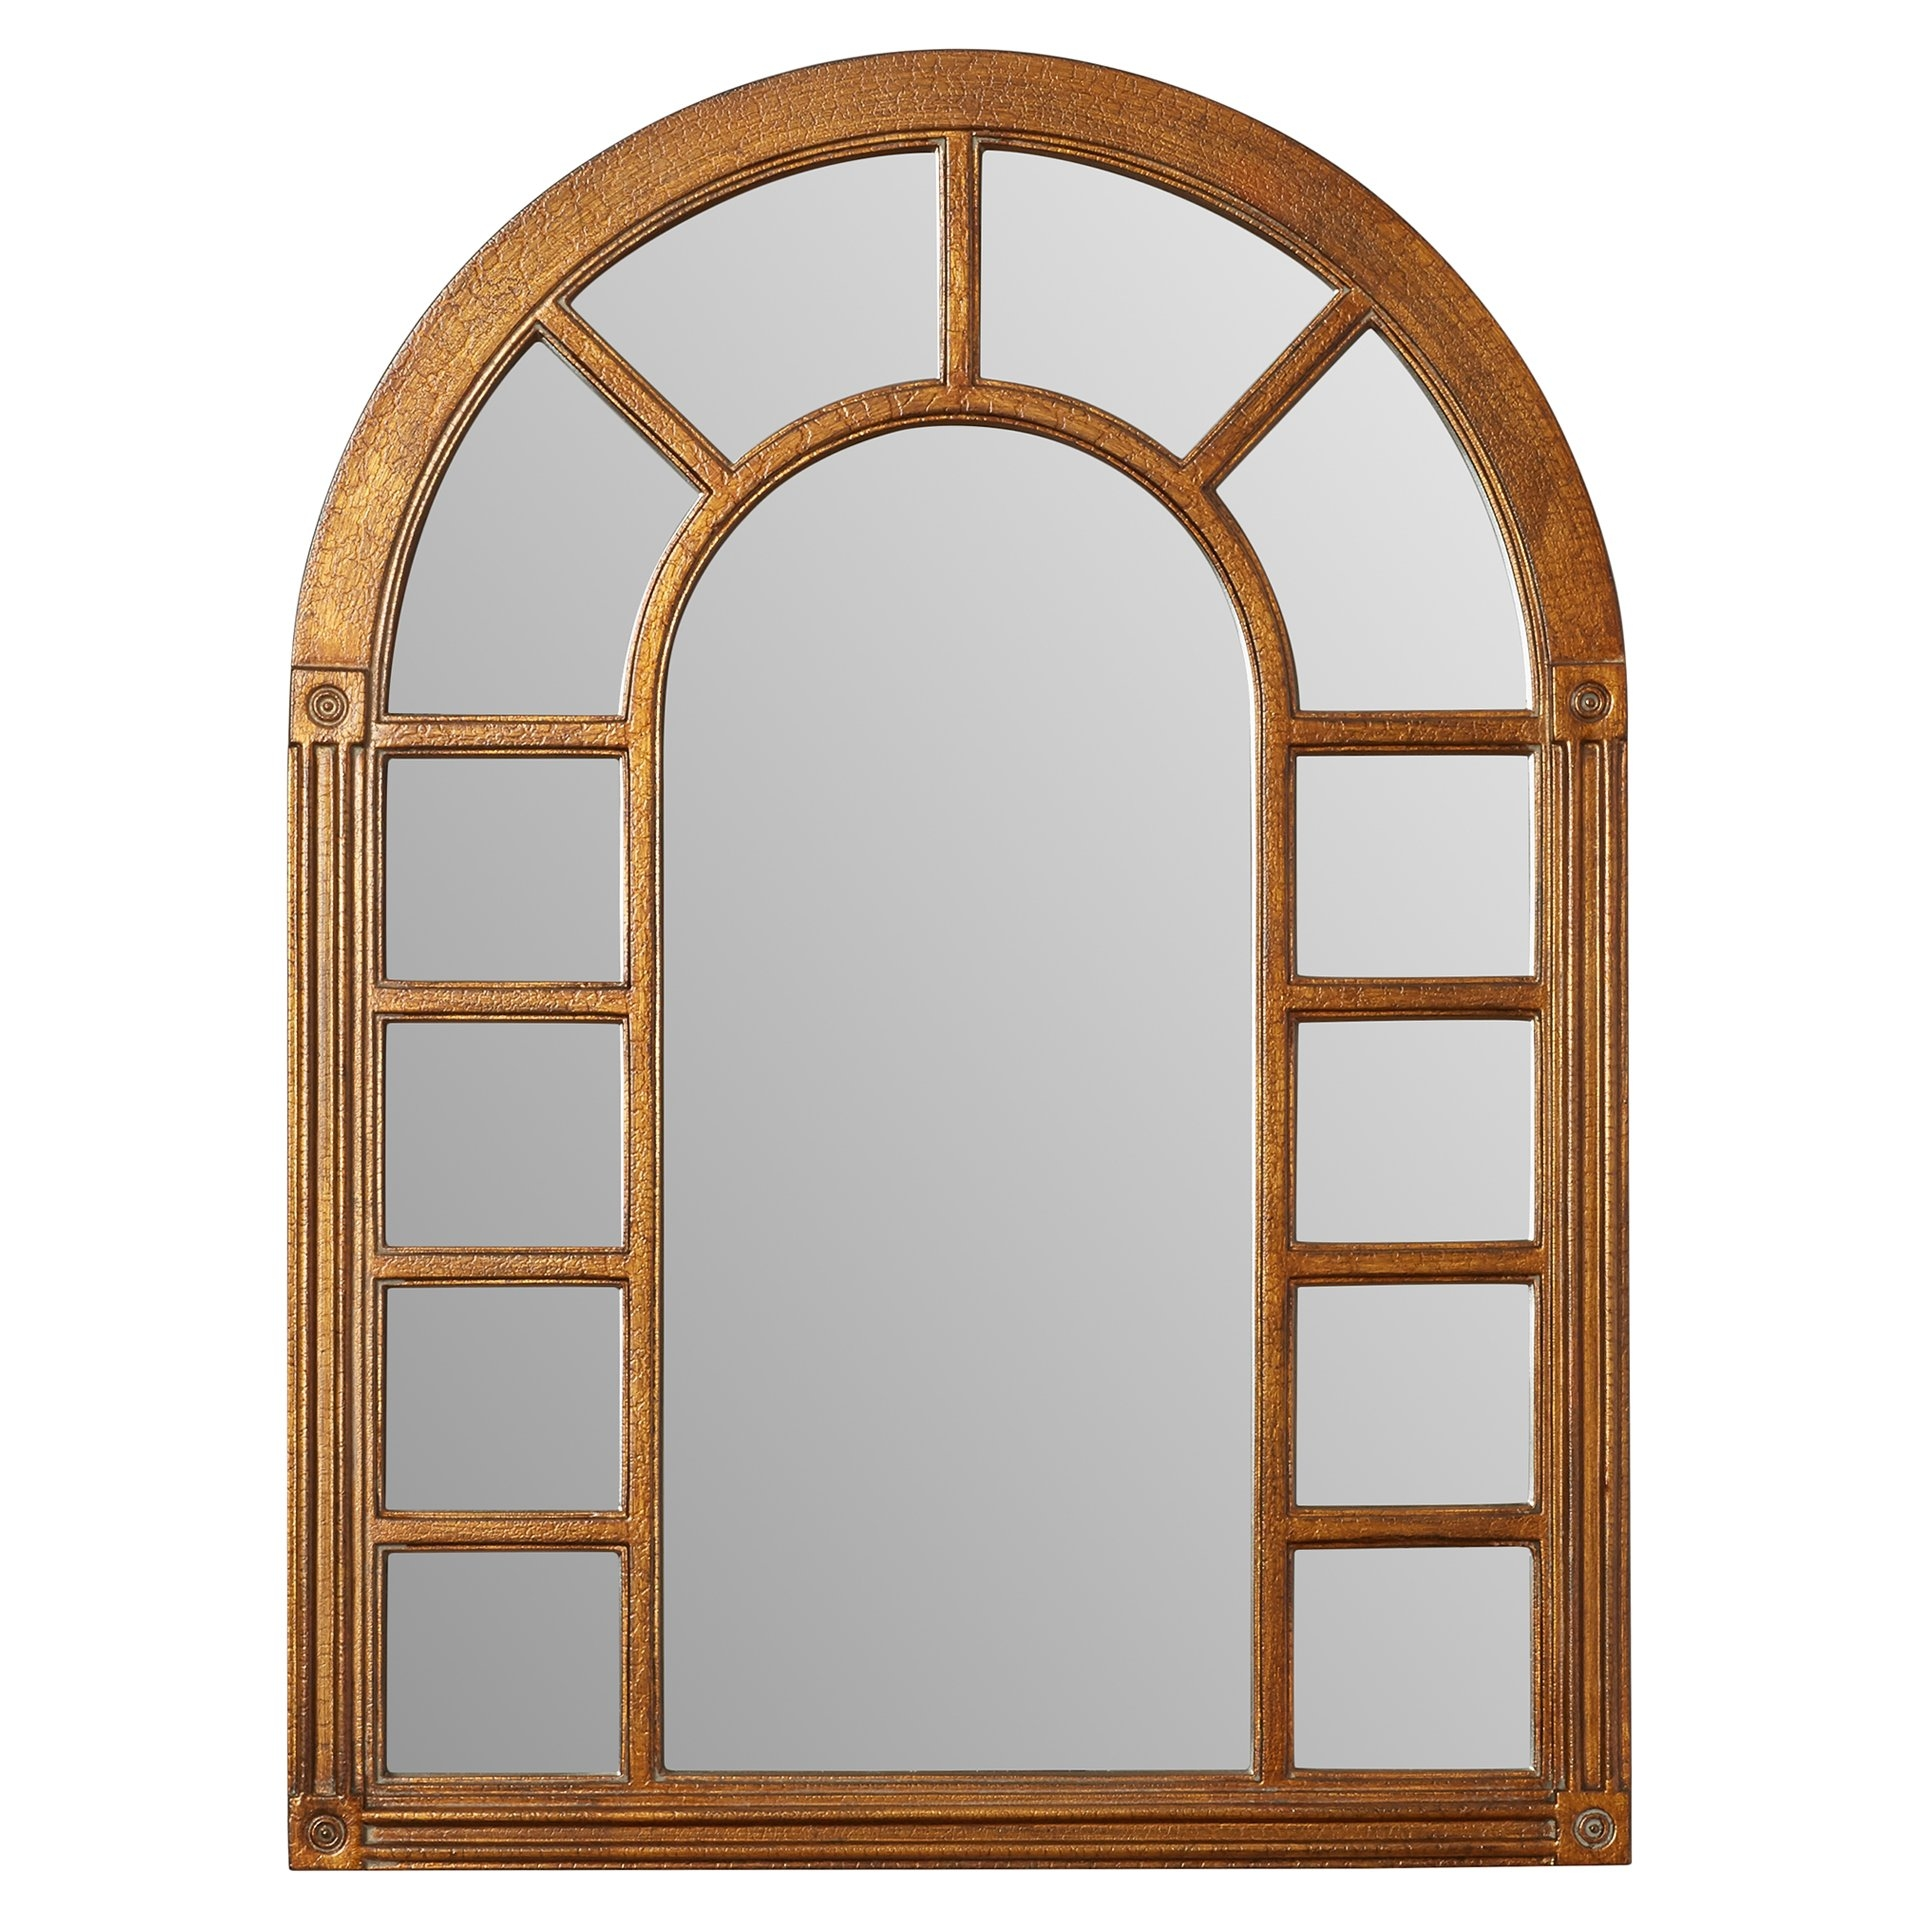 Cathedral Arched Oversized Wall Mirror Reviews Joss Main Throughout Arched Wall Mirror (View 10 of 15)